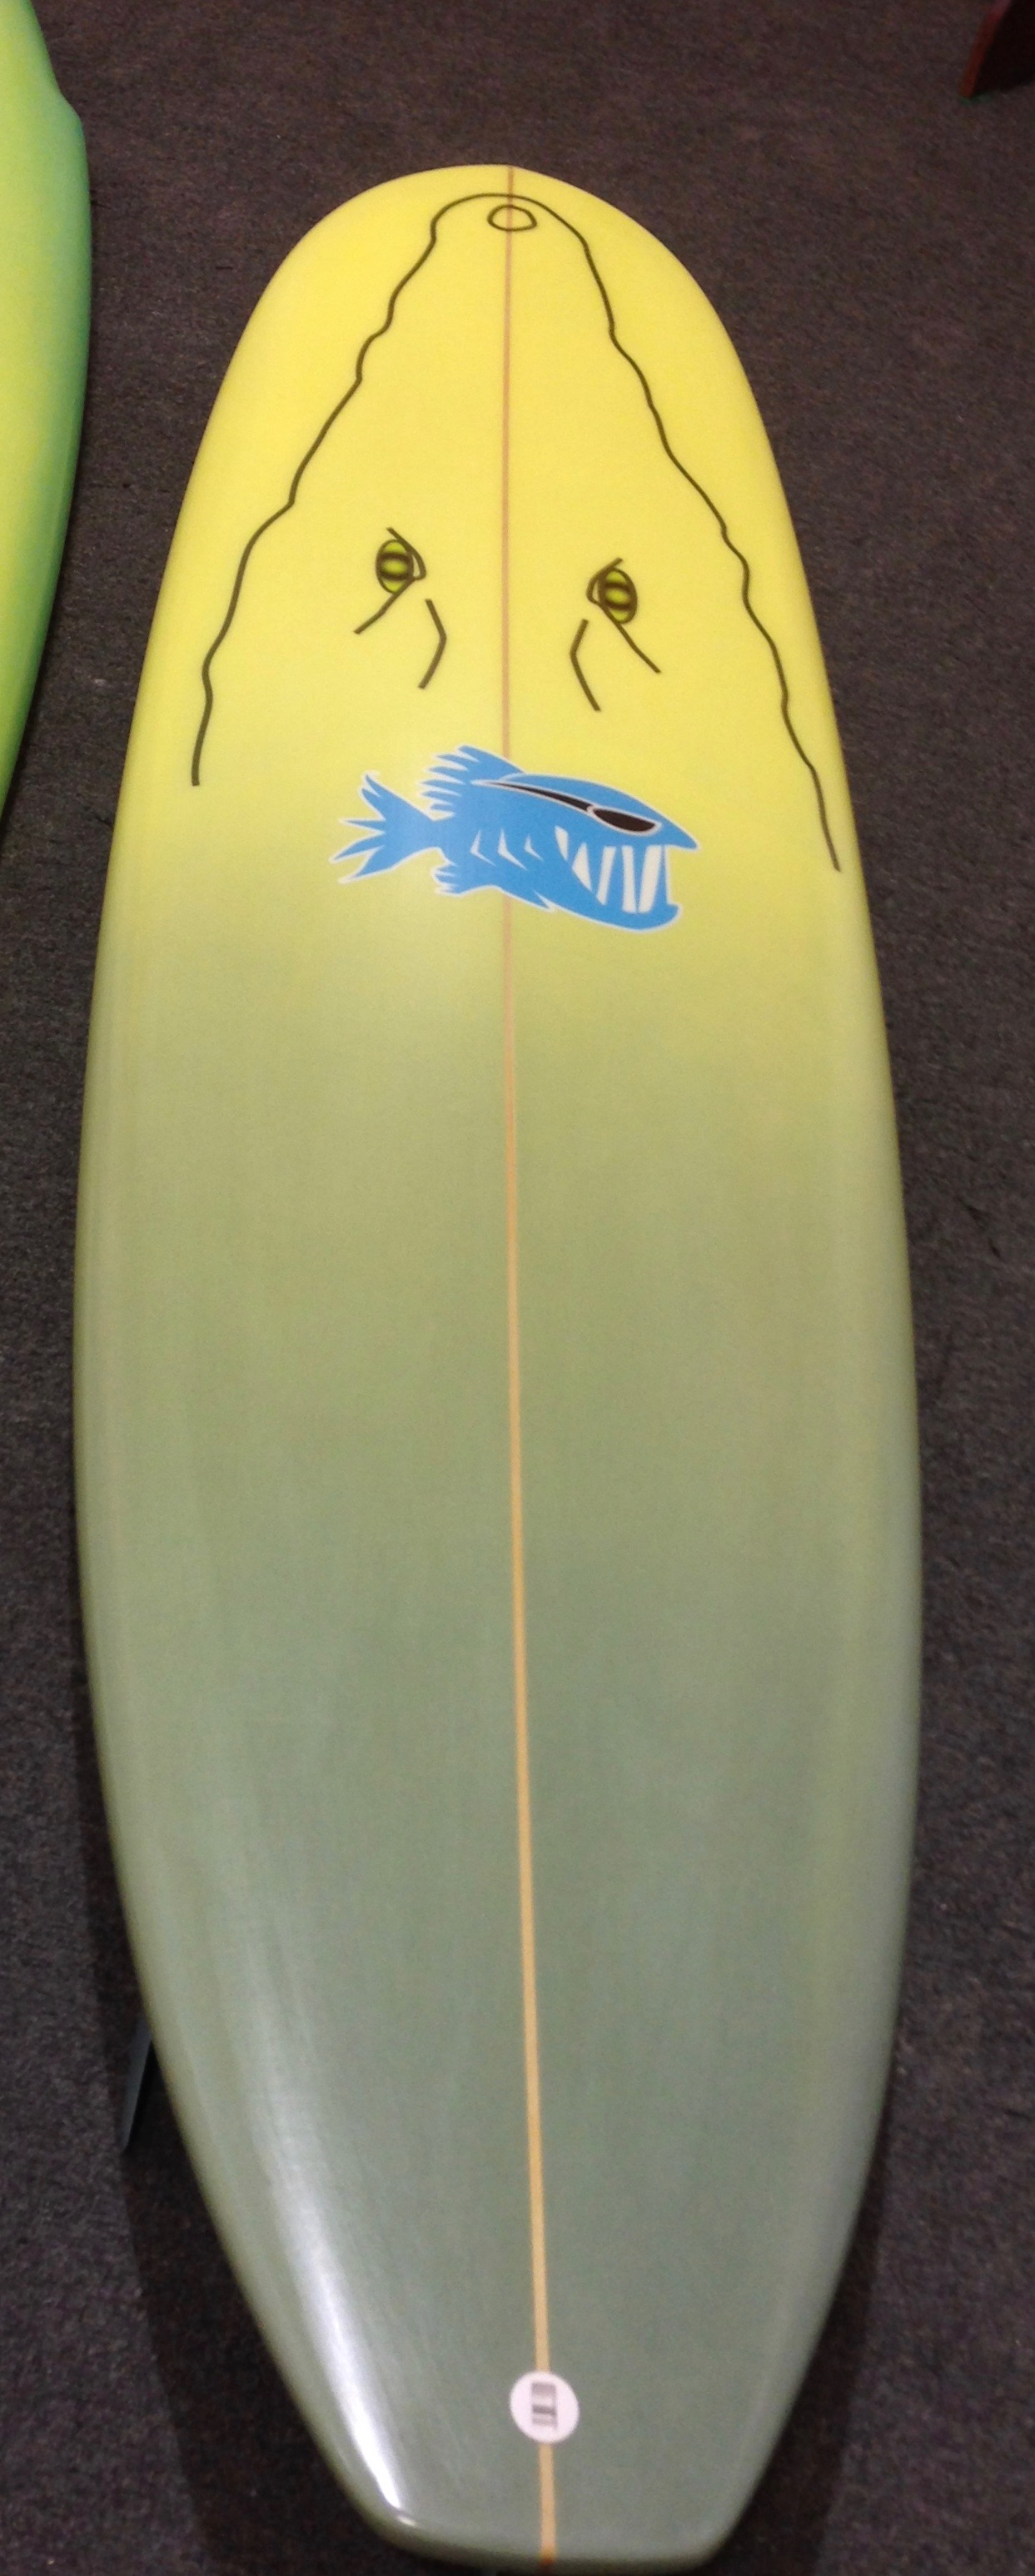 "CocoDrilo Squash Tail Mini Log - Our squash tail salt water ripper is sleek, fast and manuravable just like the Salt Water Crocodiles it was named after! If your looking to increase your wave count and rip, this is the board for you! Custom from 6'8"" to 7'2"" in size. Shown in a custom painted Croc print but can come in other colors."